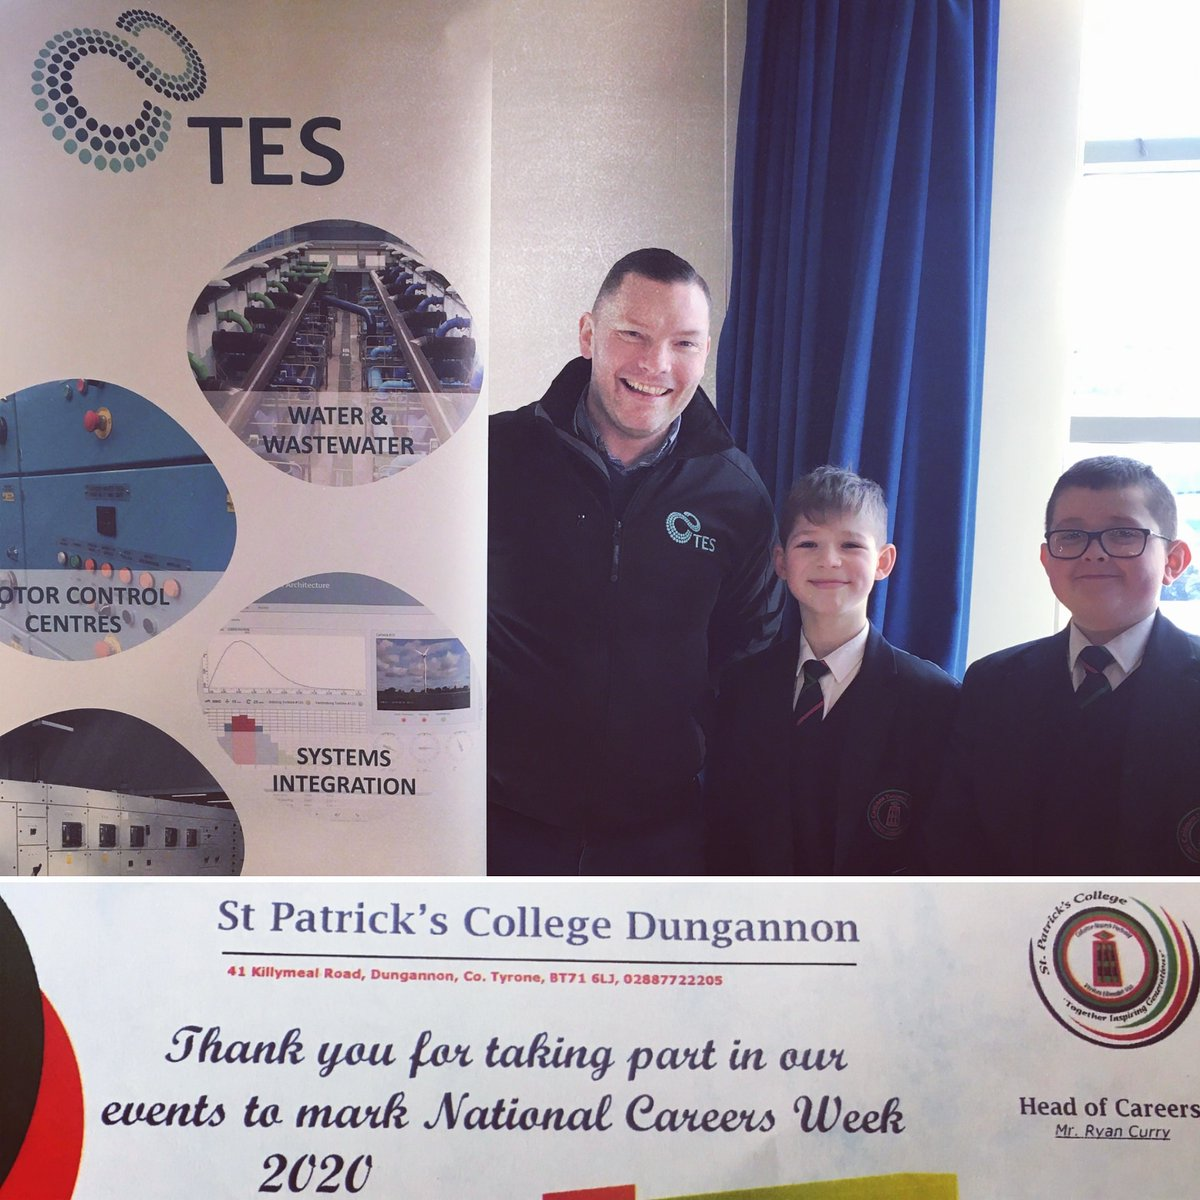 test Twitter Media - As part of National Careers Week TES would like to thank St Patricks College Dungannon for giving us the opportunity to raise awareness about opportunities available for future careers in the Engineering sector. #engineering #futurecareers https://t.co/fbTOMlAnvL